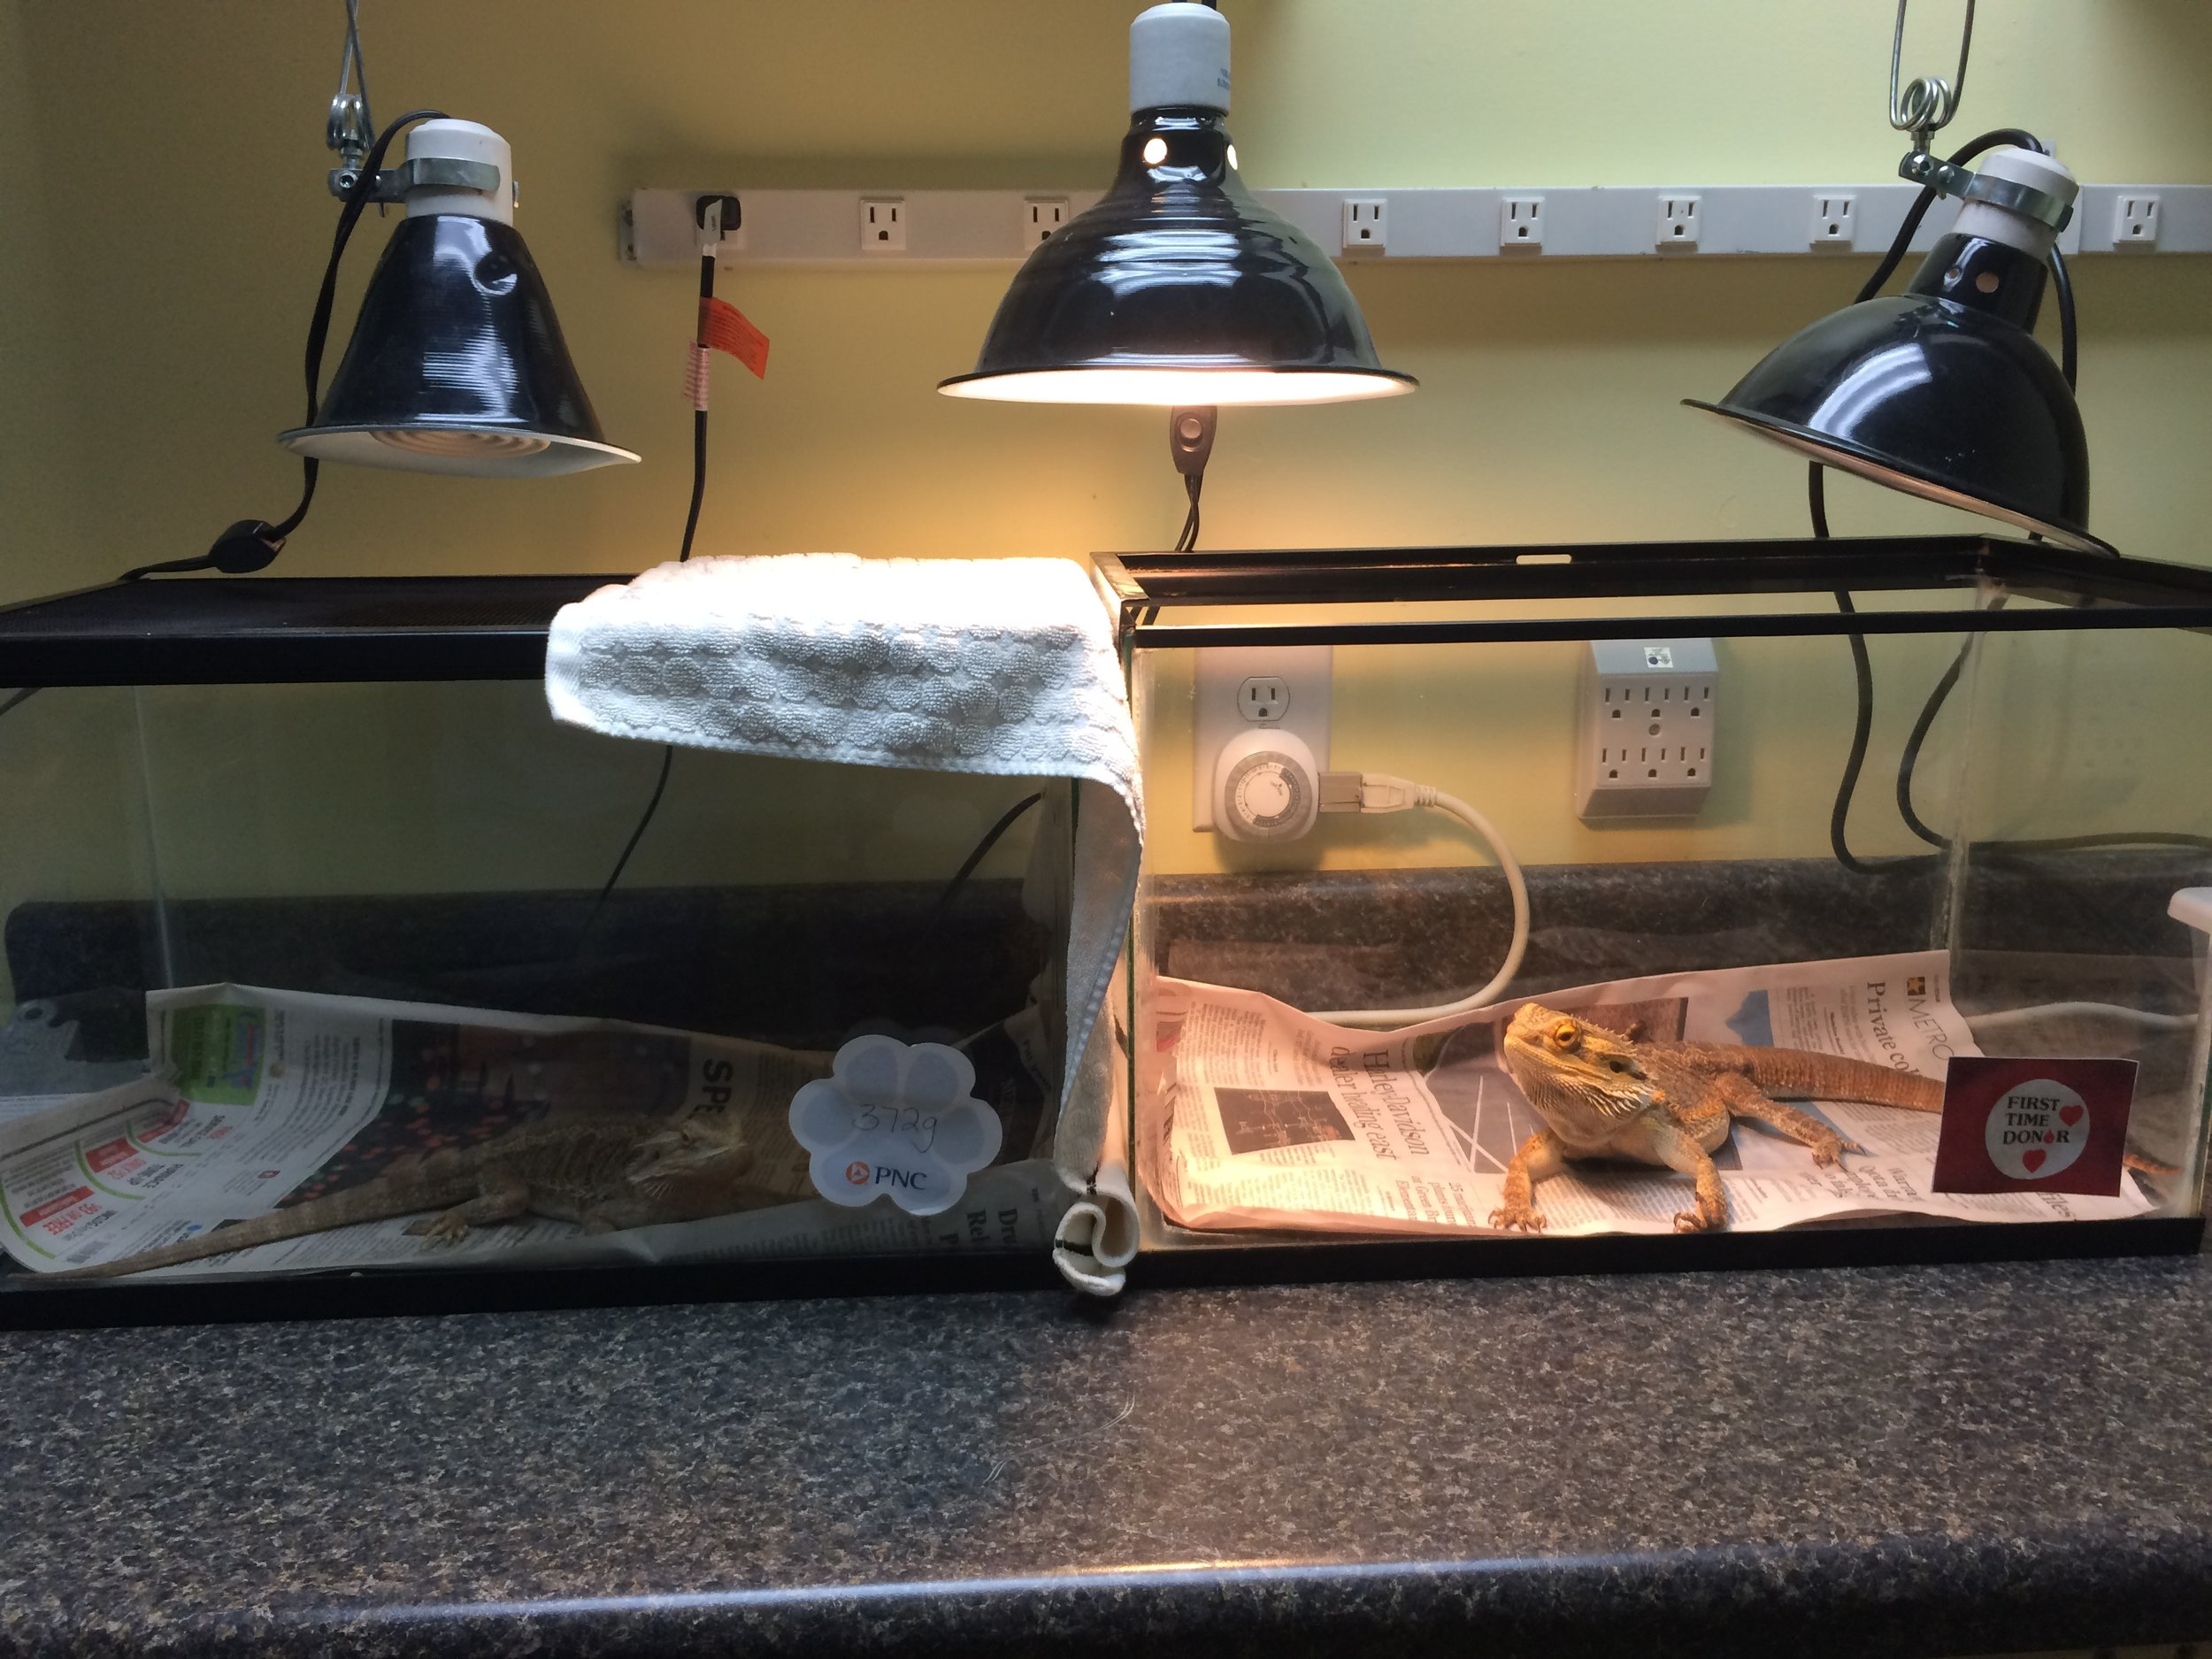 """Here is """"Butterscotch"""" on the left, feeling a little better after the transfusion, and """"Chain"""" on the right. There is a visual barrier between the two because even though they cooperated today, in real life adult bearded dragons are usually not so peaceful and willing to help each other!"""